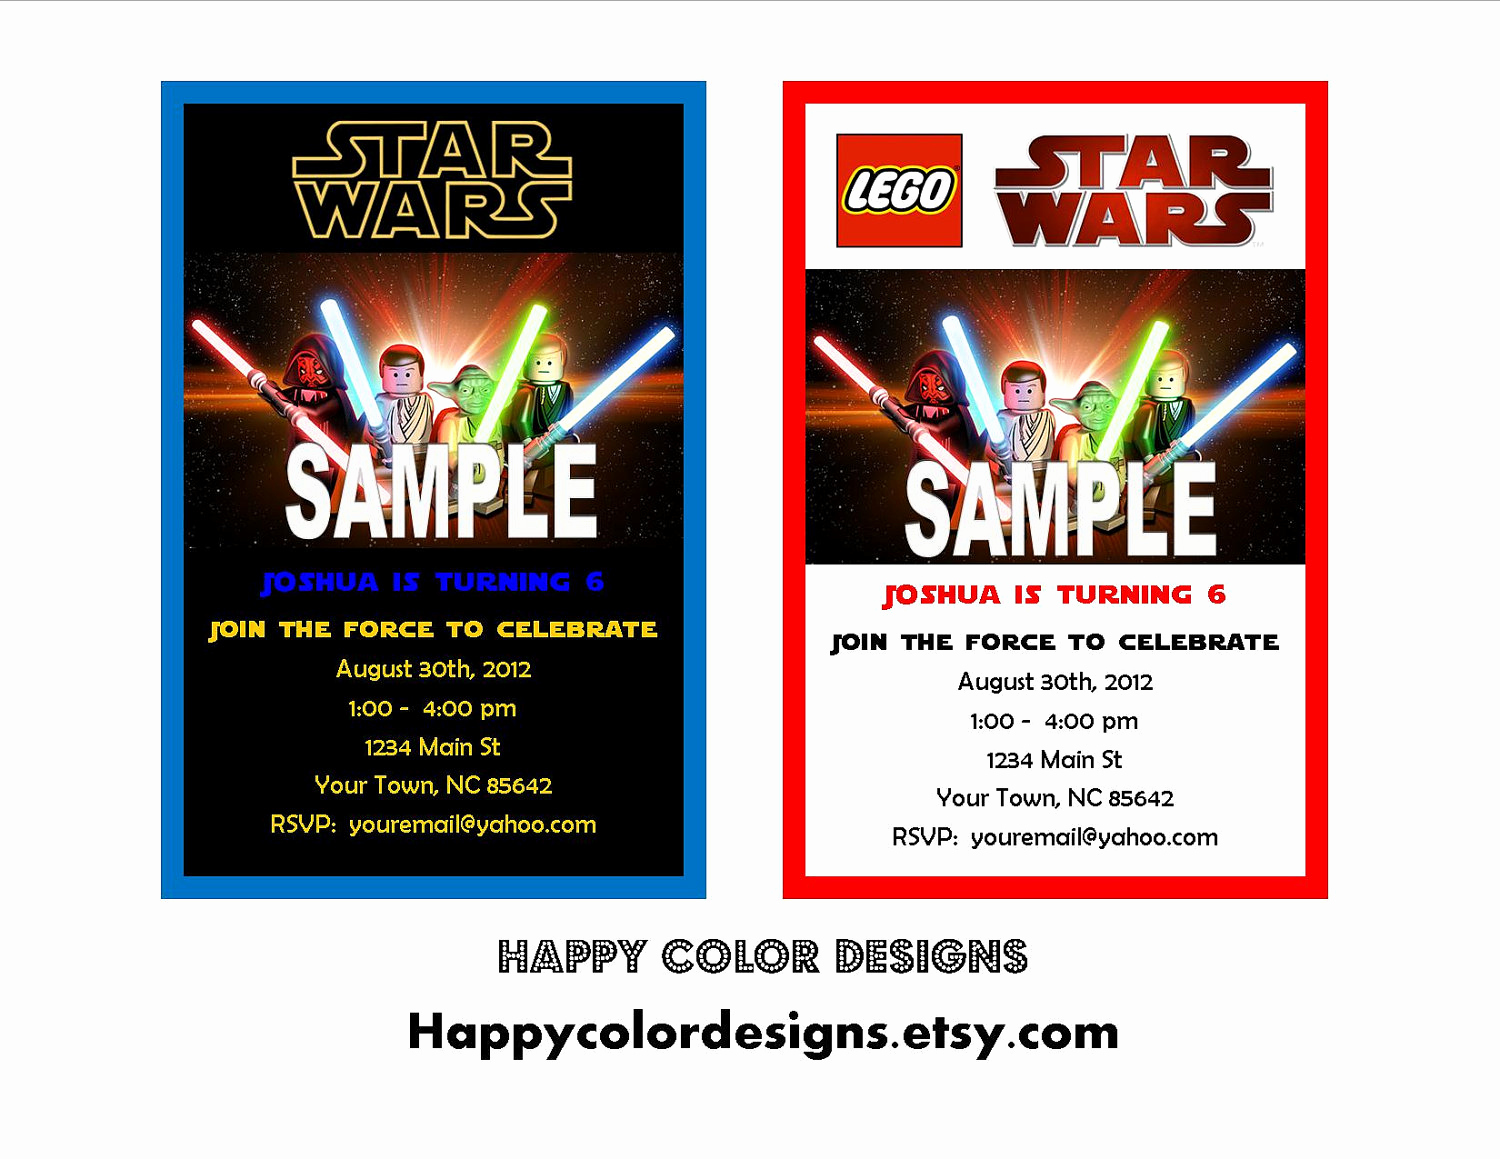 Star Wars Invitation Template Free New Free Star Wars Invitation Templates